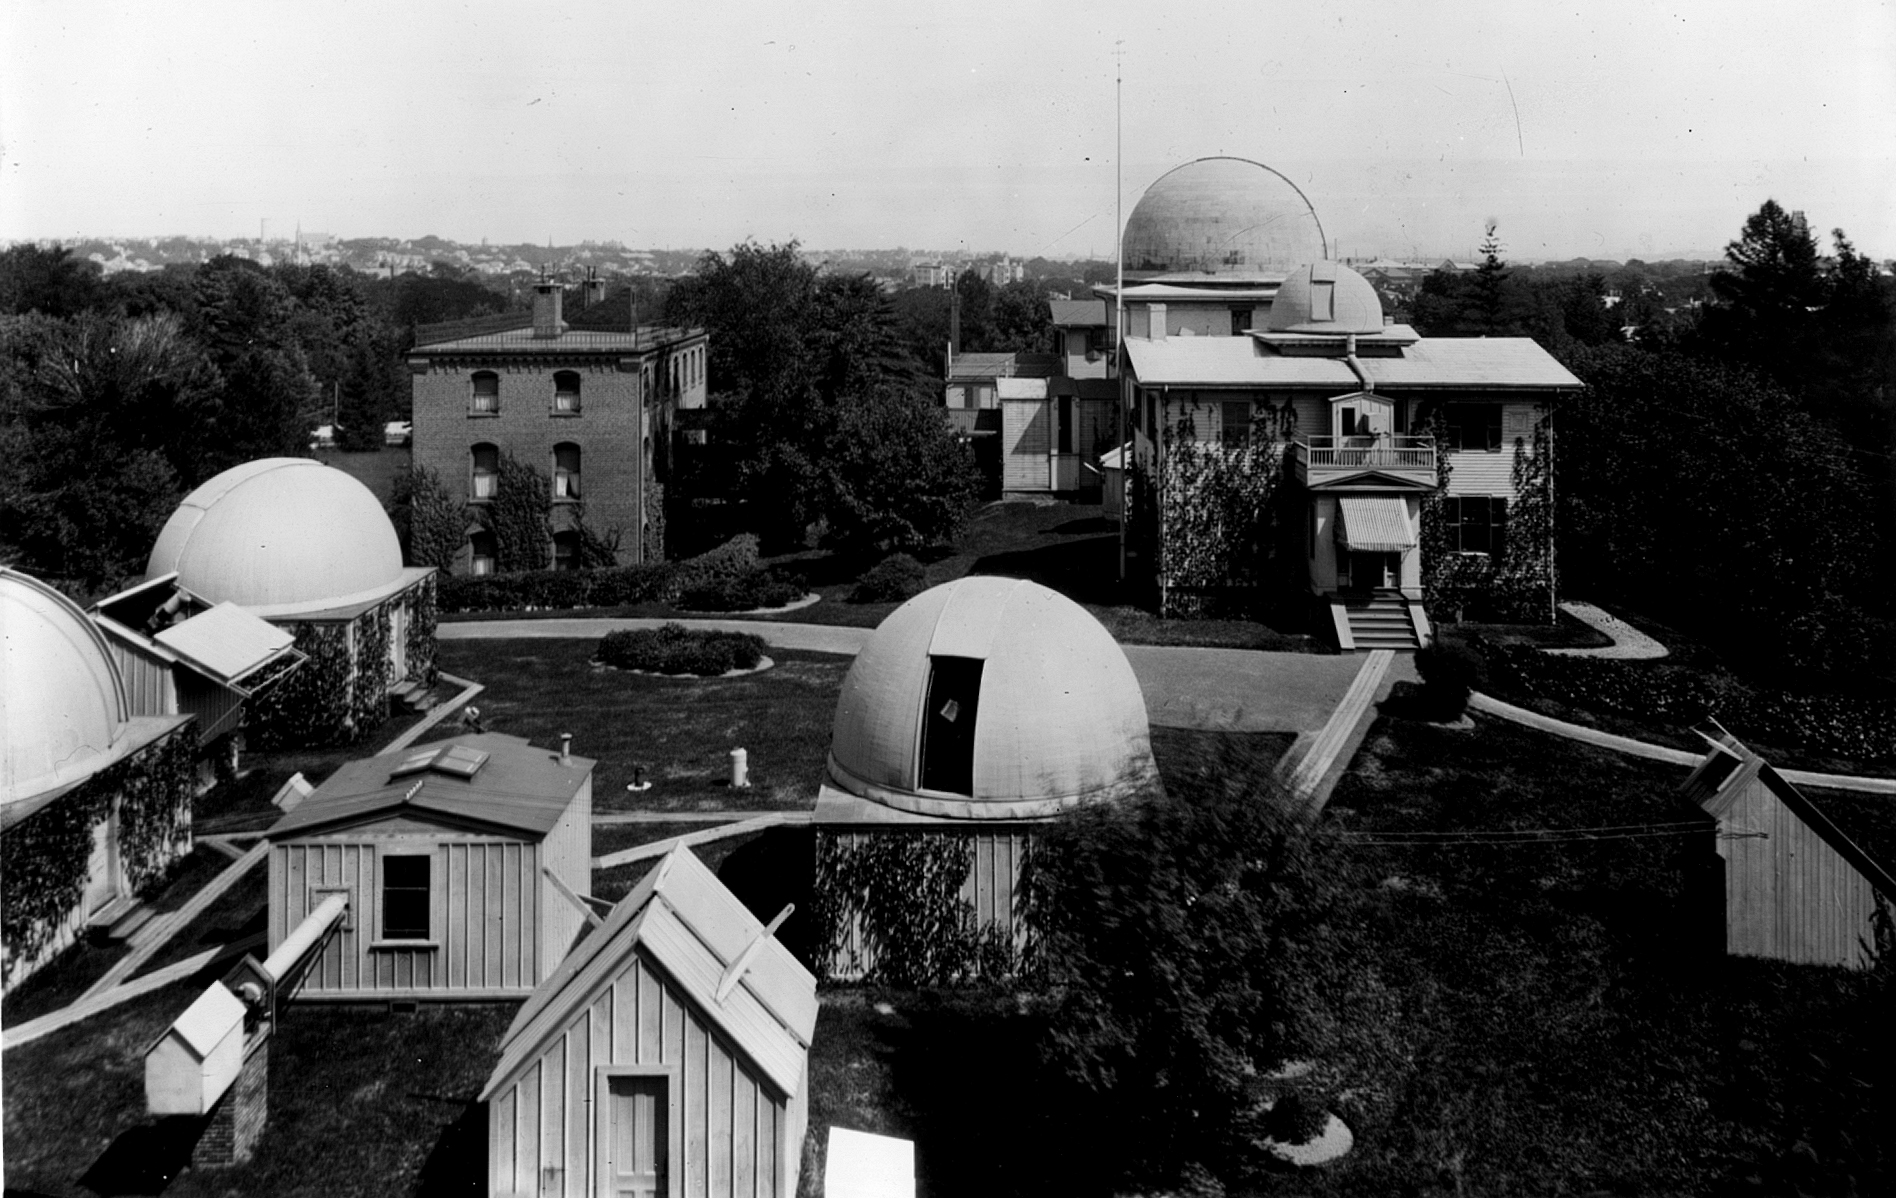 Grounds of Harvard College Observatory, circa 1899. (Source: Harvard College Observatory. This media file is in the public domain because its copyright has expired).